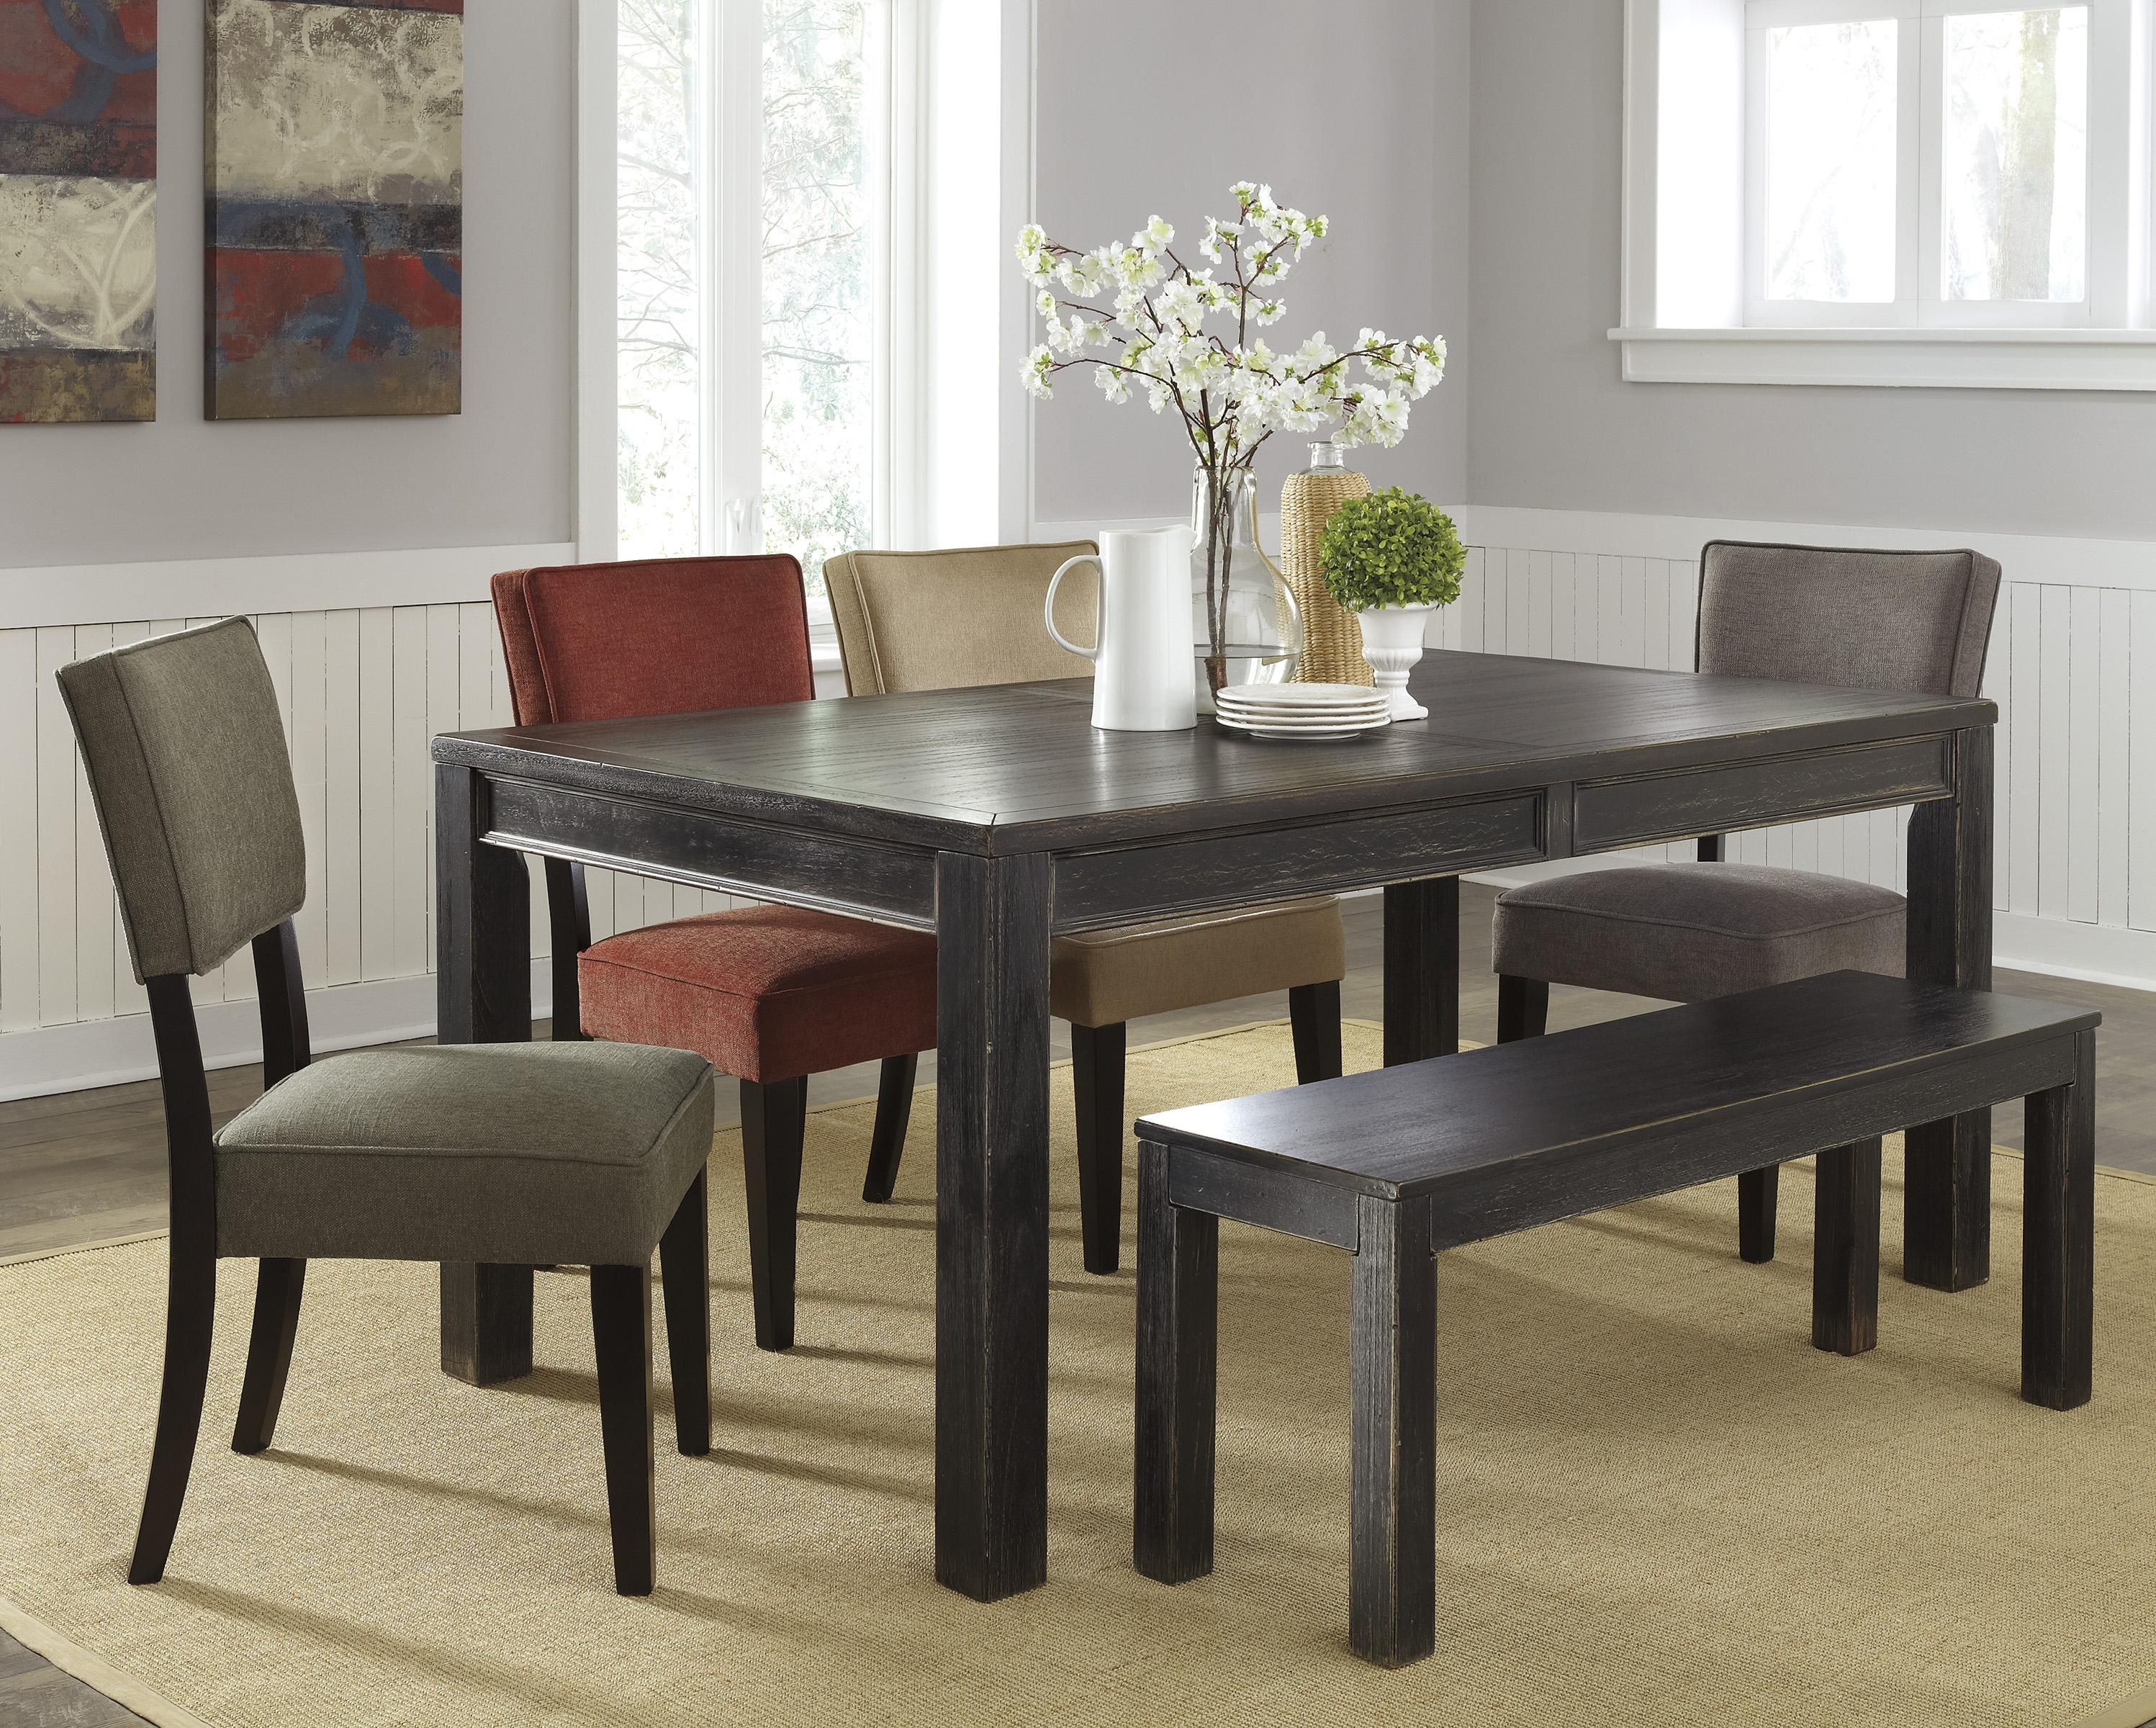 Signature Design by Ashley Gavelston 6-Piece Table Set with Bench - Item Number: D532-25+01+02+03+04+09